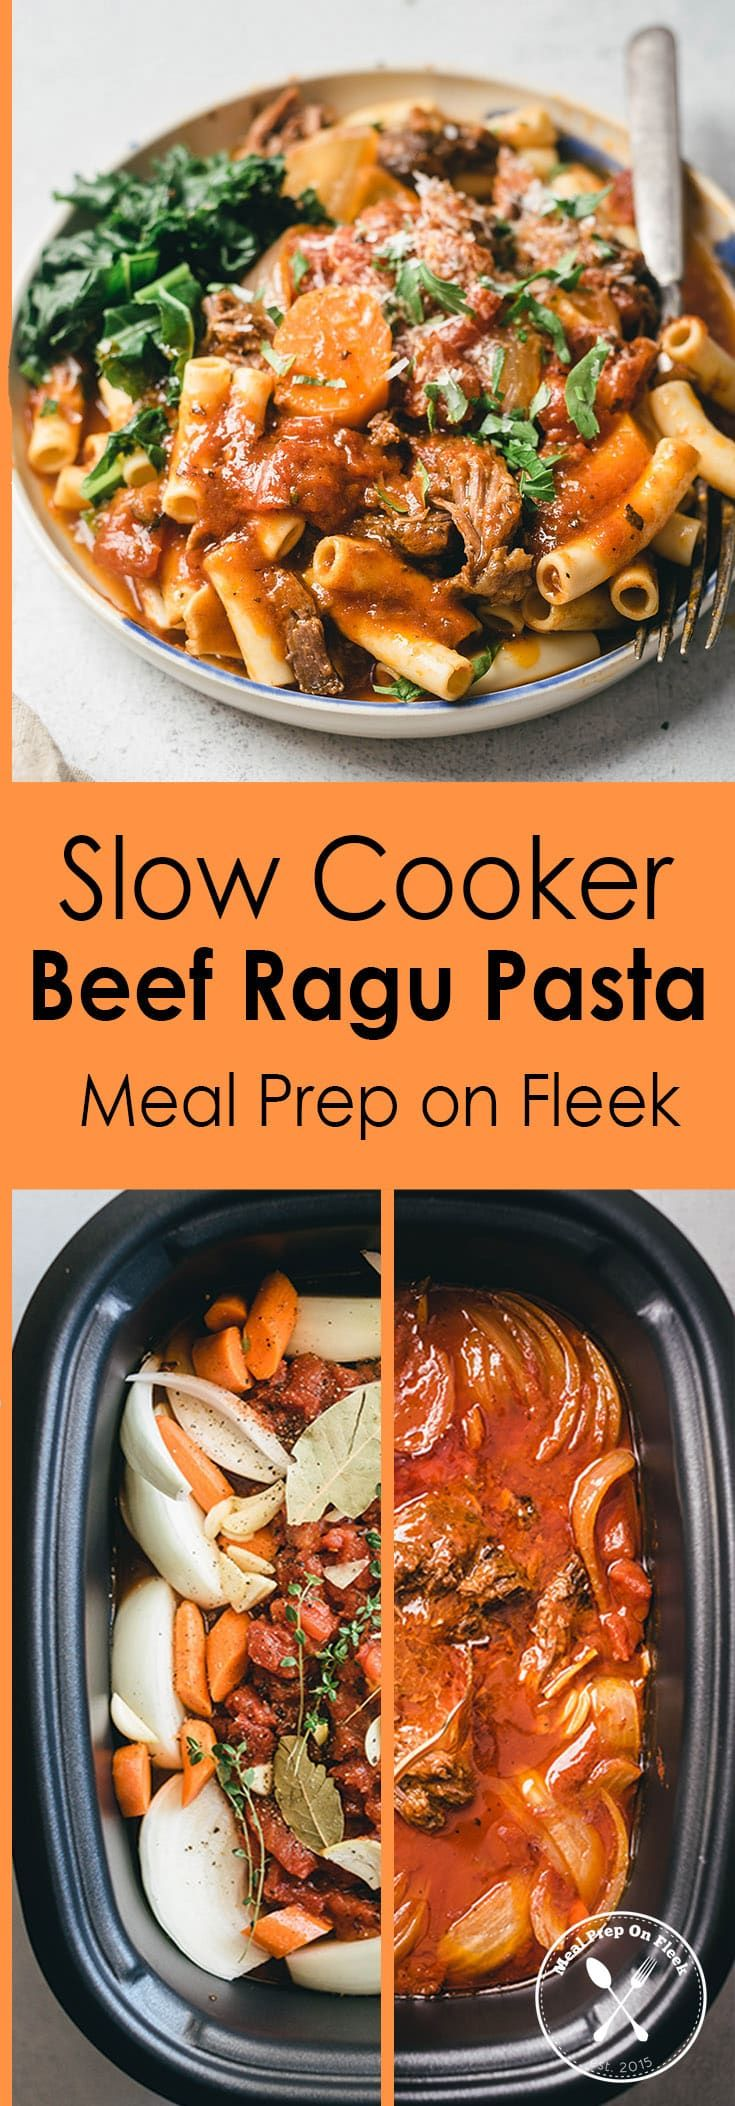 Slow Cooker Beef Ragu Pasta Meal Prep - Meal Prep on Fleek™